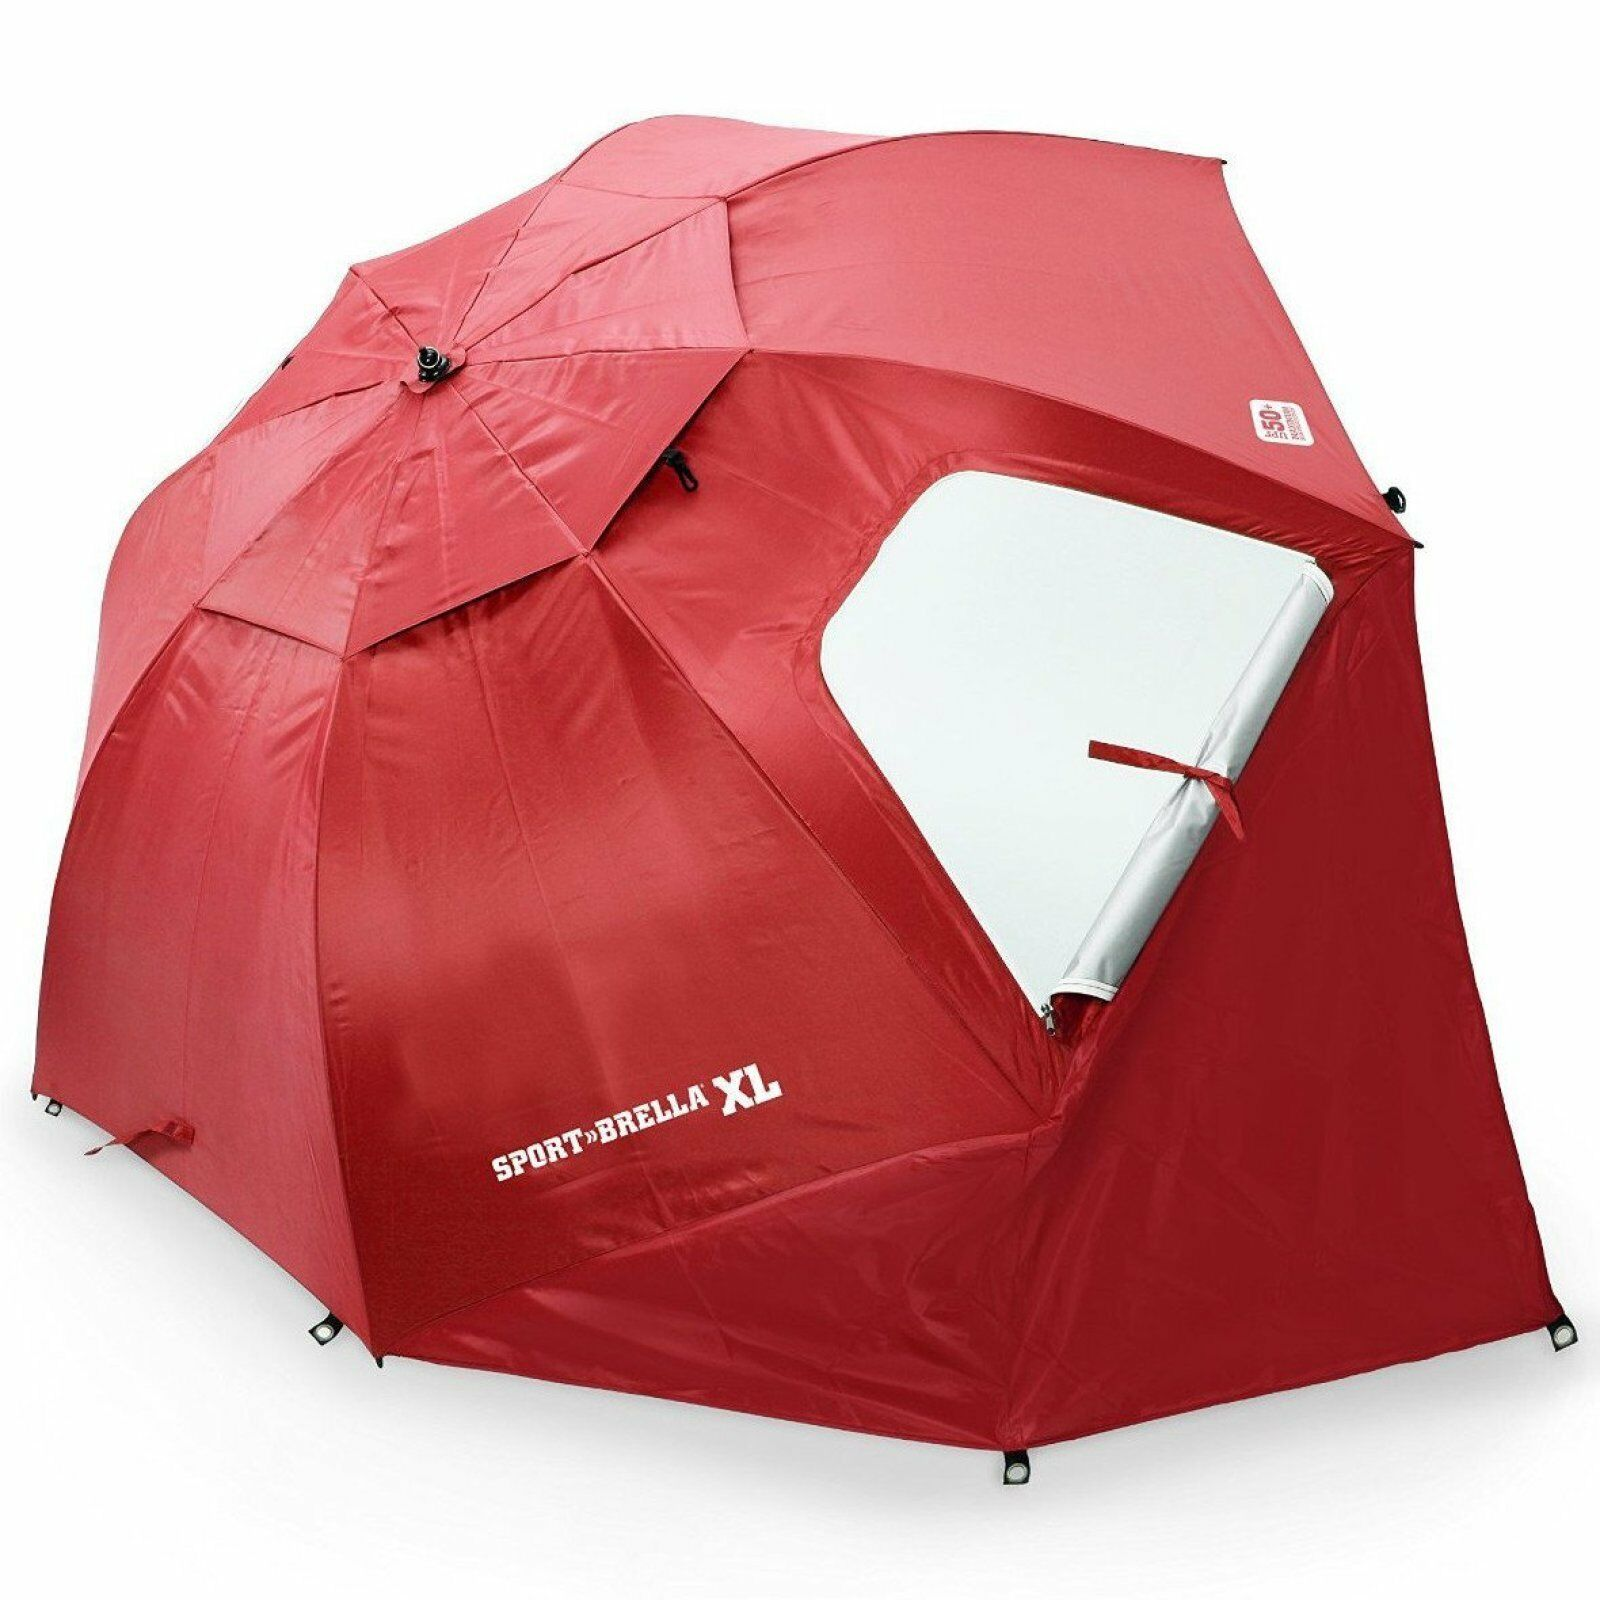 Extra Large Umbrellas For Women Portable All Weather Sunshade Canopy Beach Summe